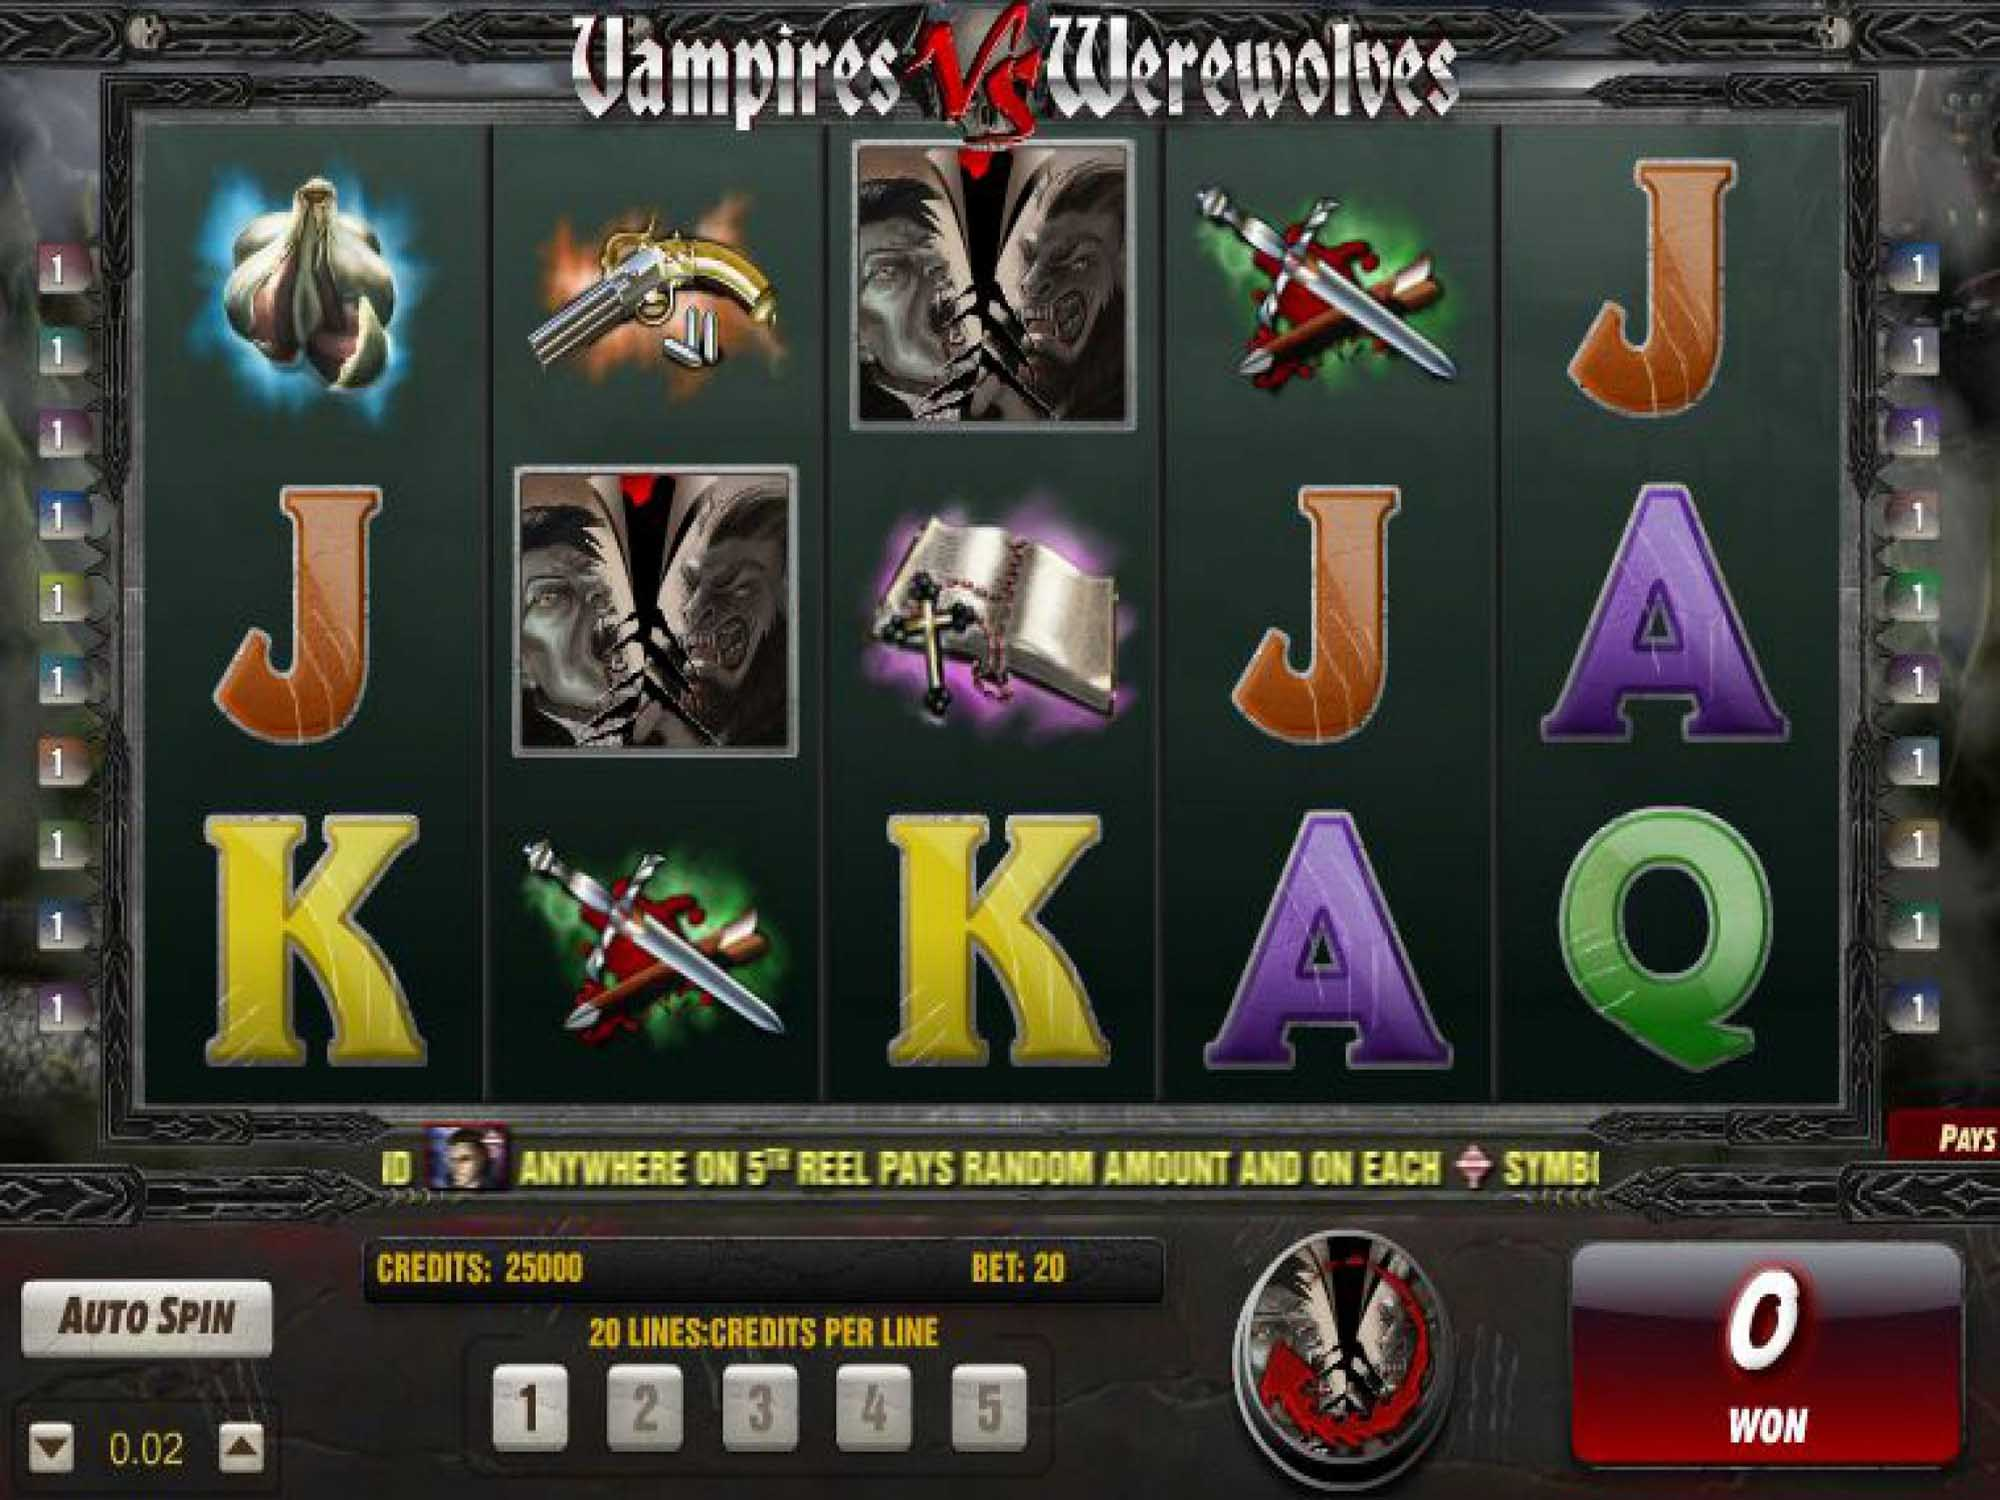 Vampires VS Werewolves at scorching slots